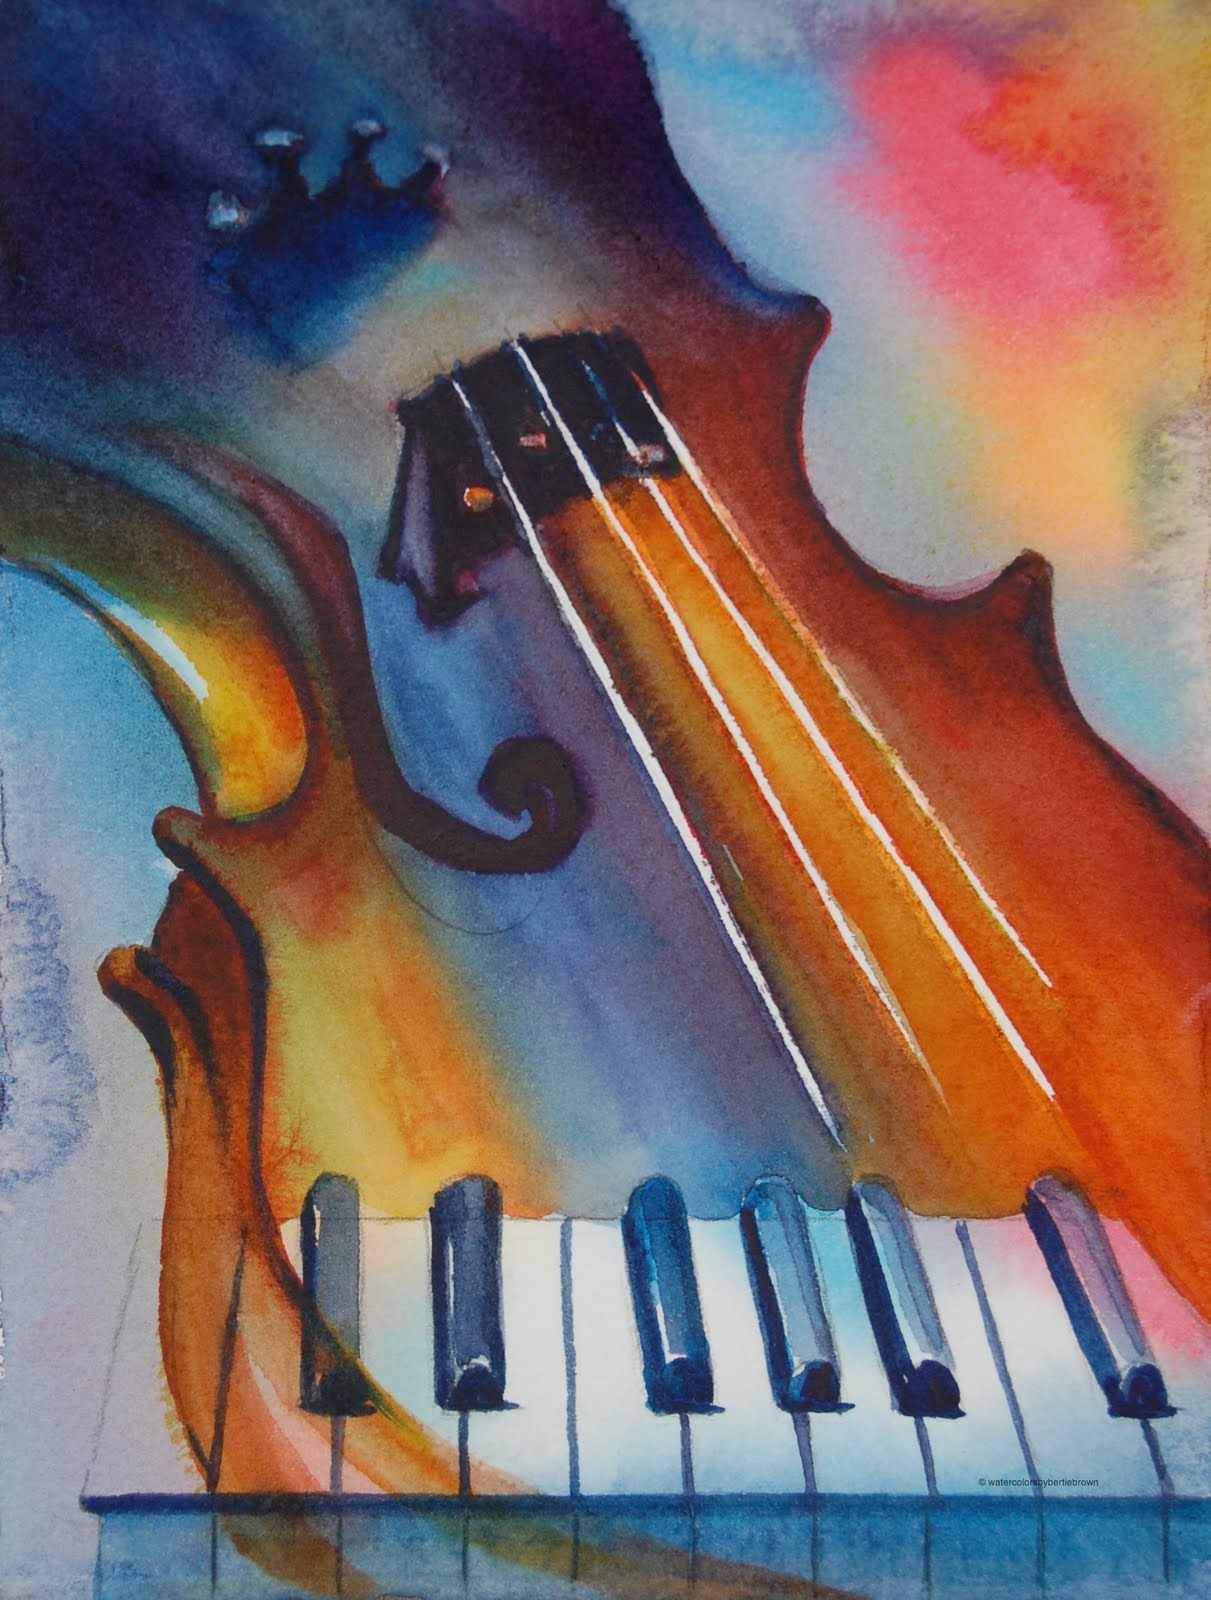 Daily Painters of Pennsylvania: Musically Inclined (Violin, Piano